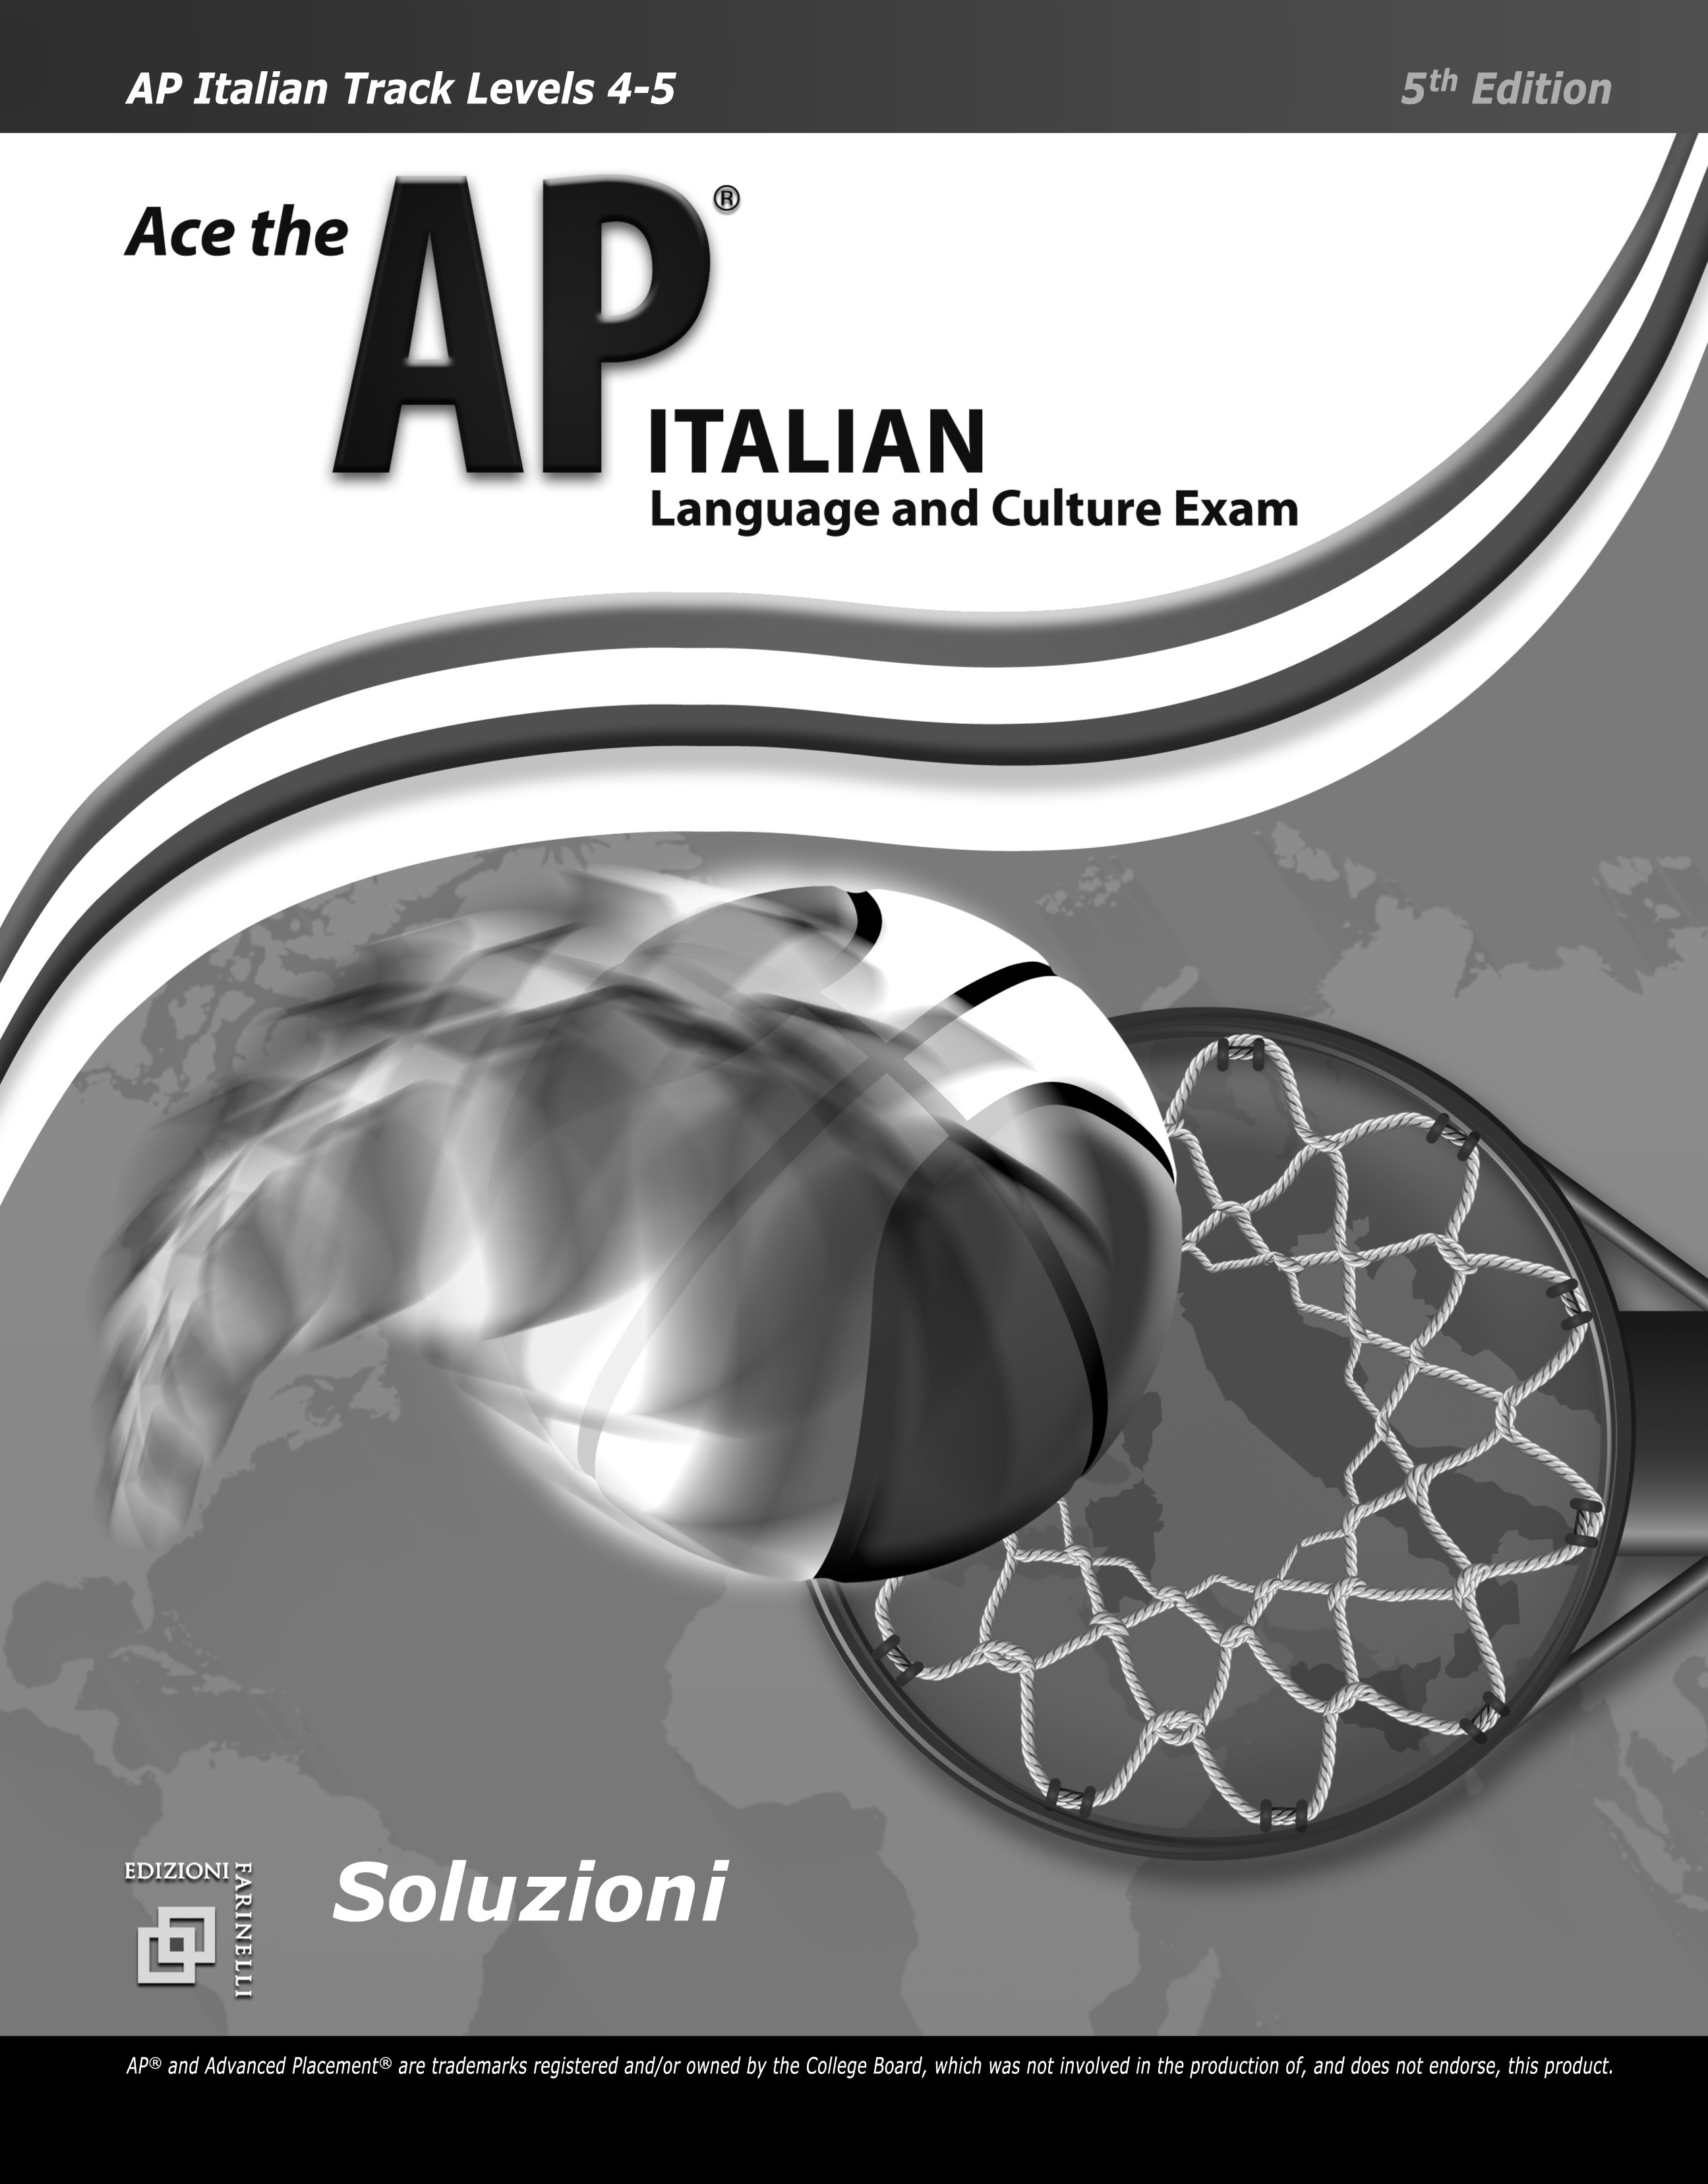 SOLUZIONI: Ace the AP, 5th Edition